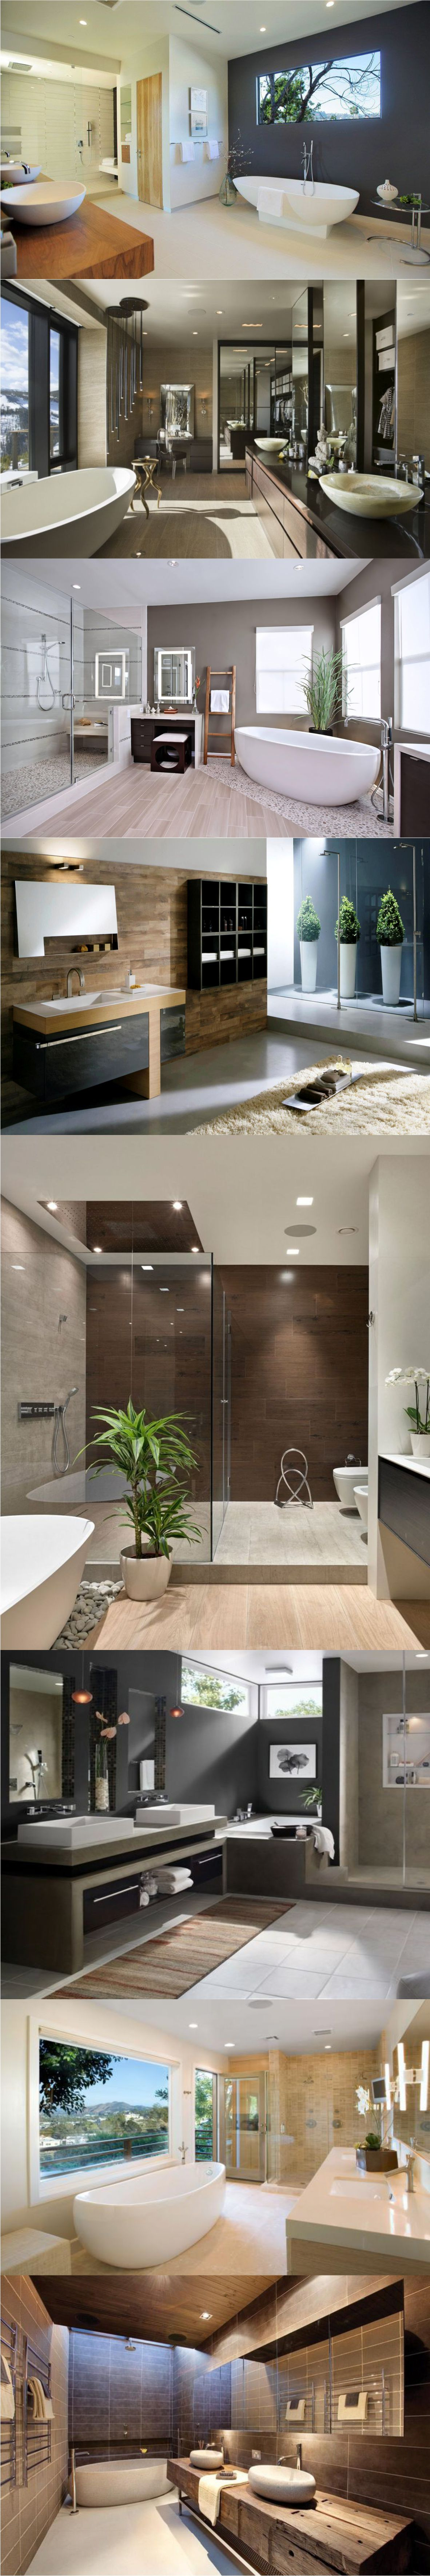 Best Contemporary bathroom design ideas 2018